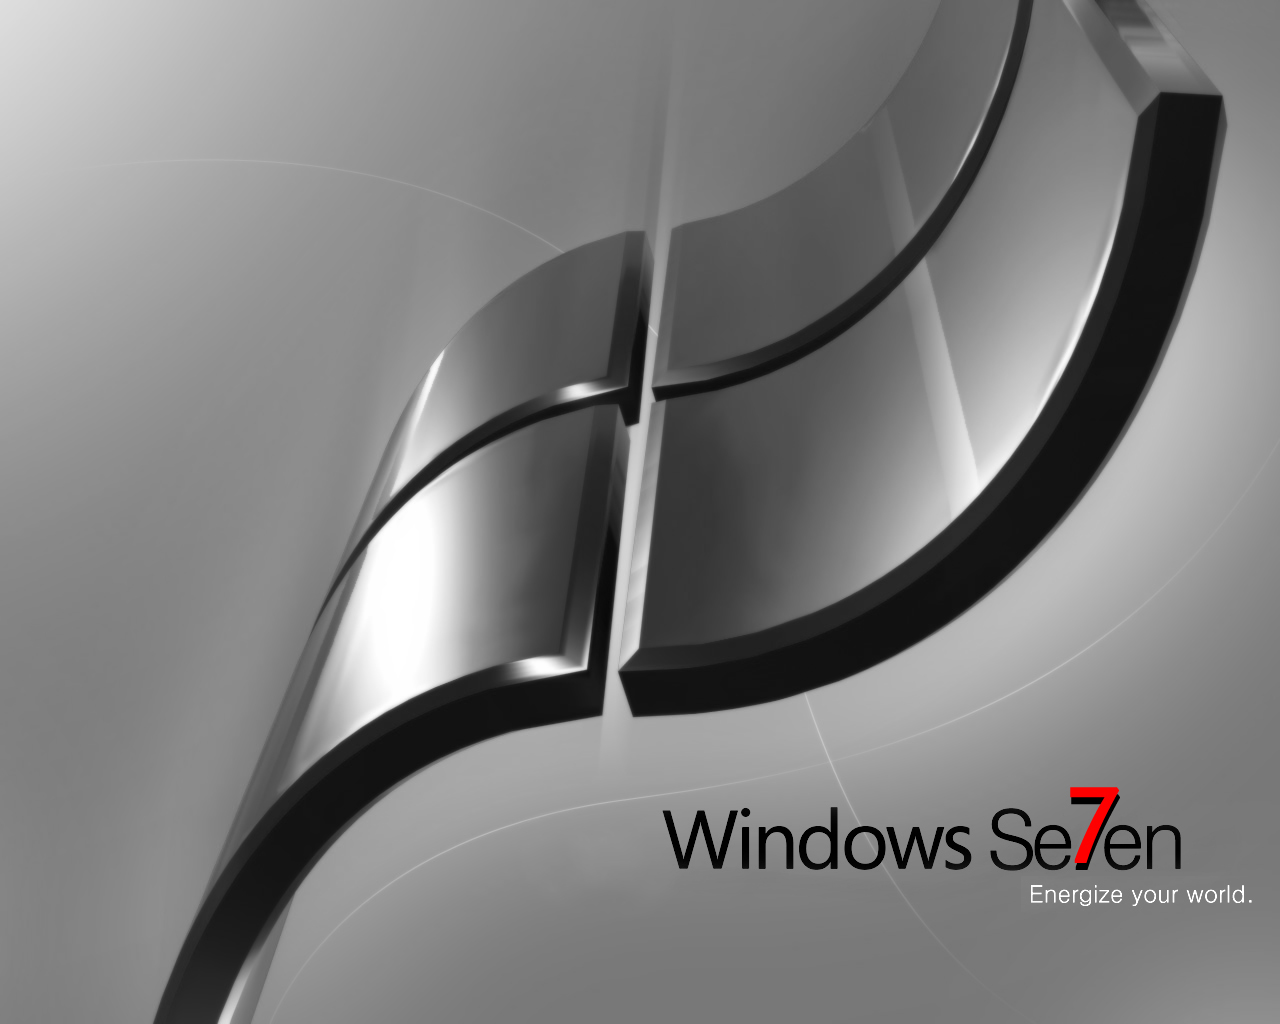 WIndows se7en by Arandas